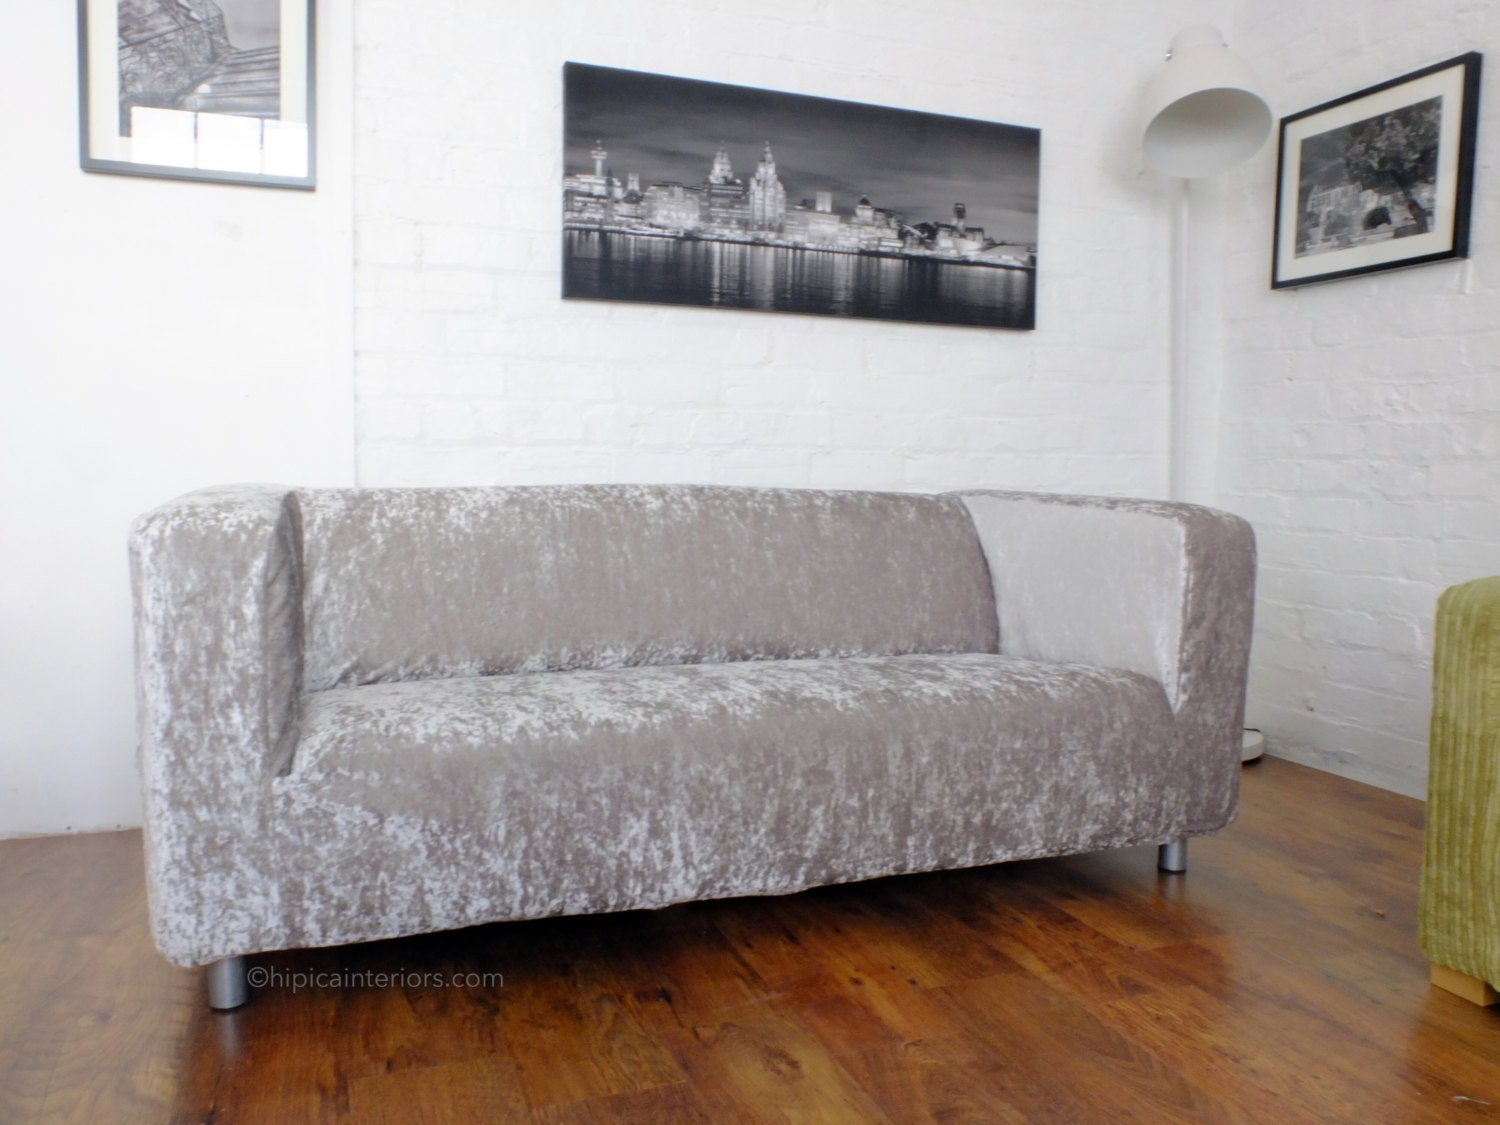 Slip cover for the ikea klippan 4 seat sofa luxury shimmer - Klippan sofa ikea ...